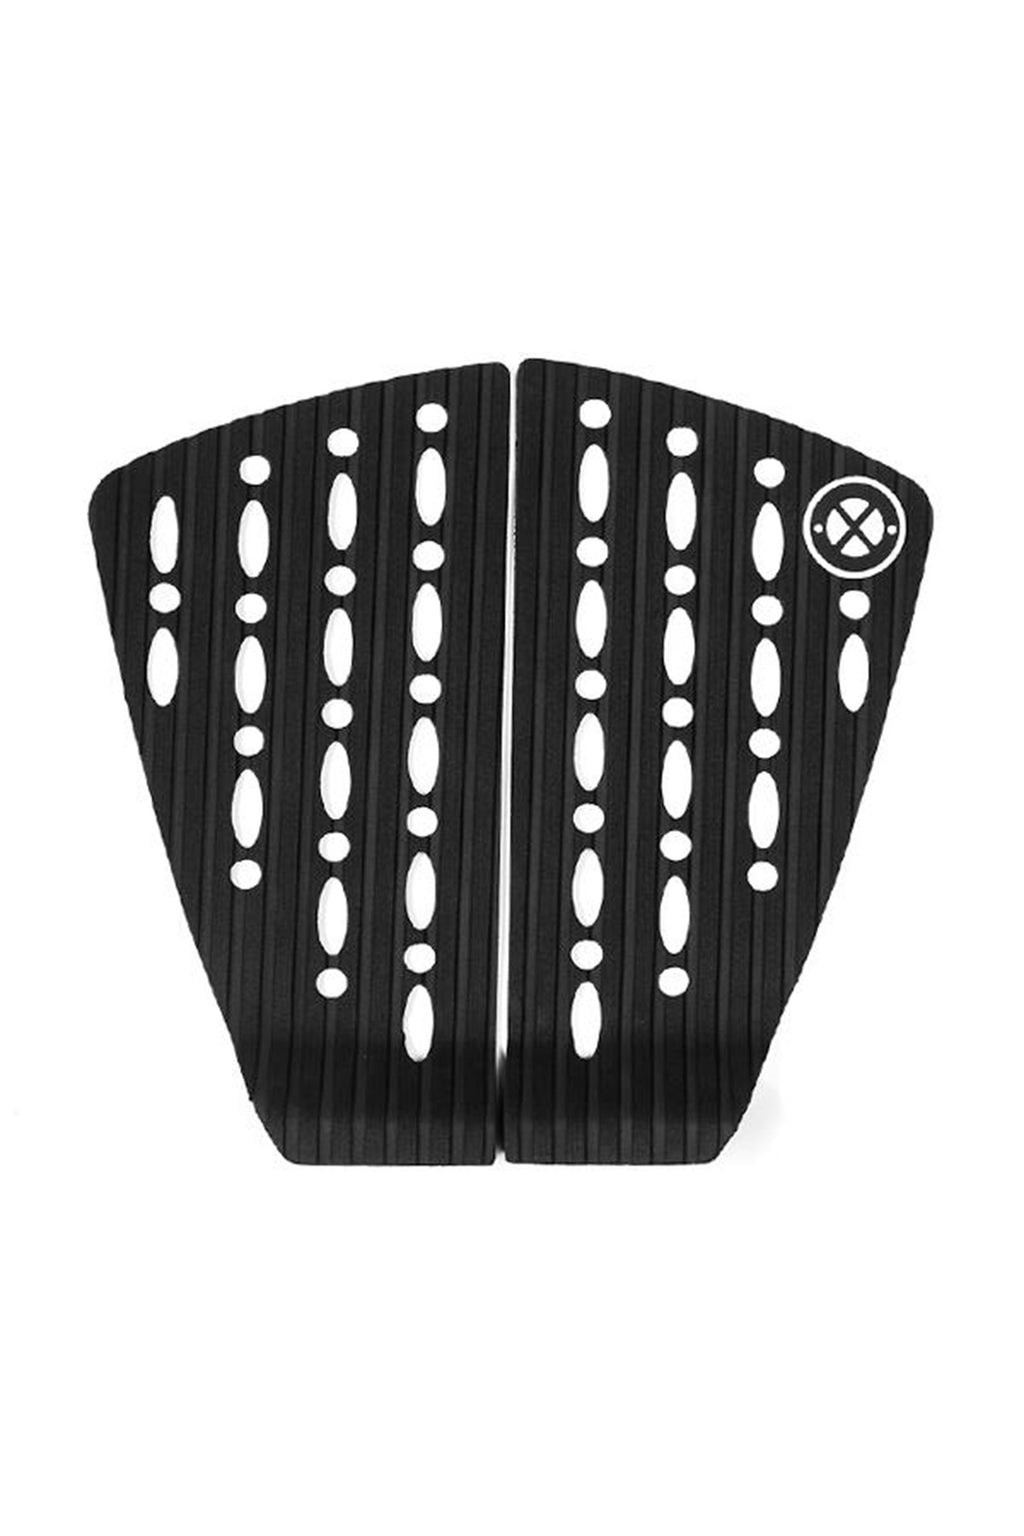 Dreded 2PC Macro Surfing Tail Pad - Black